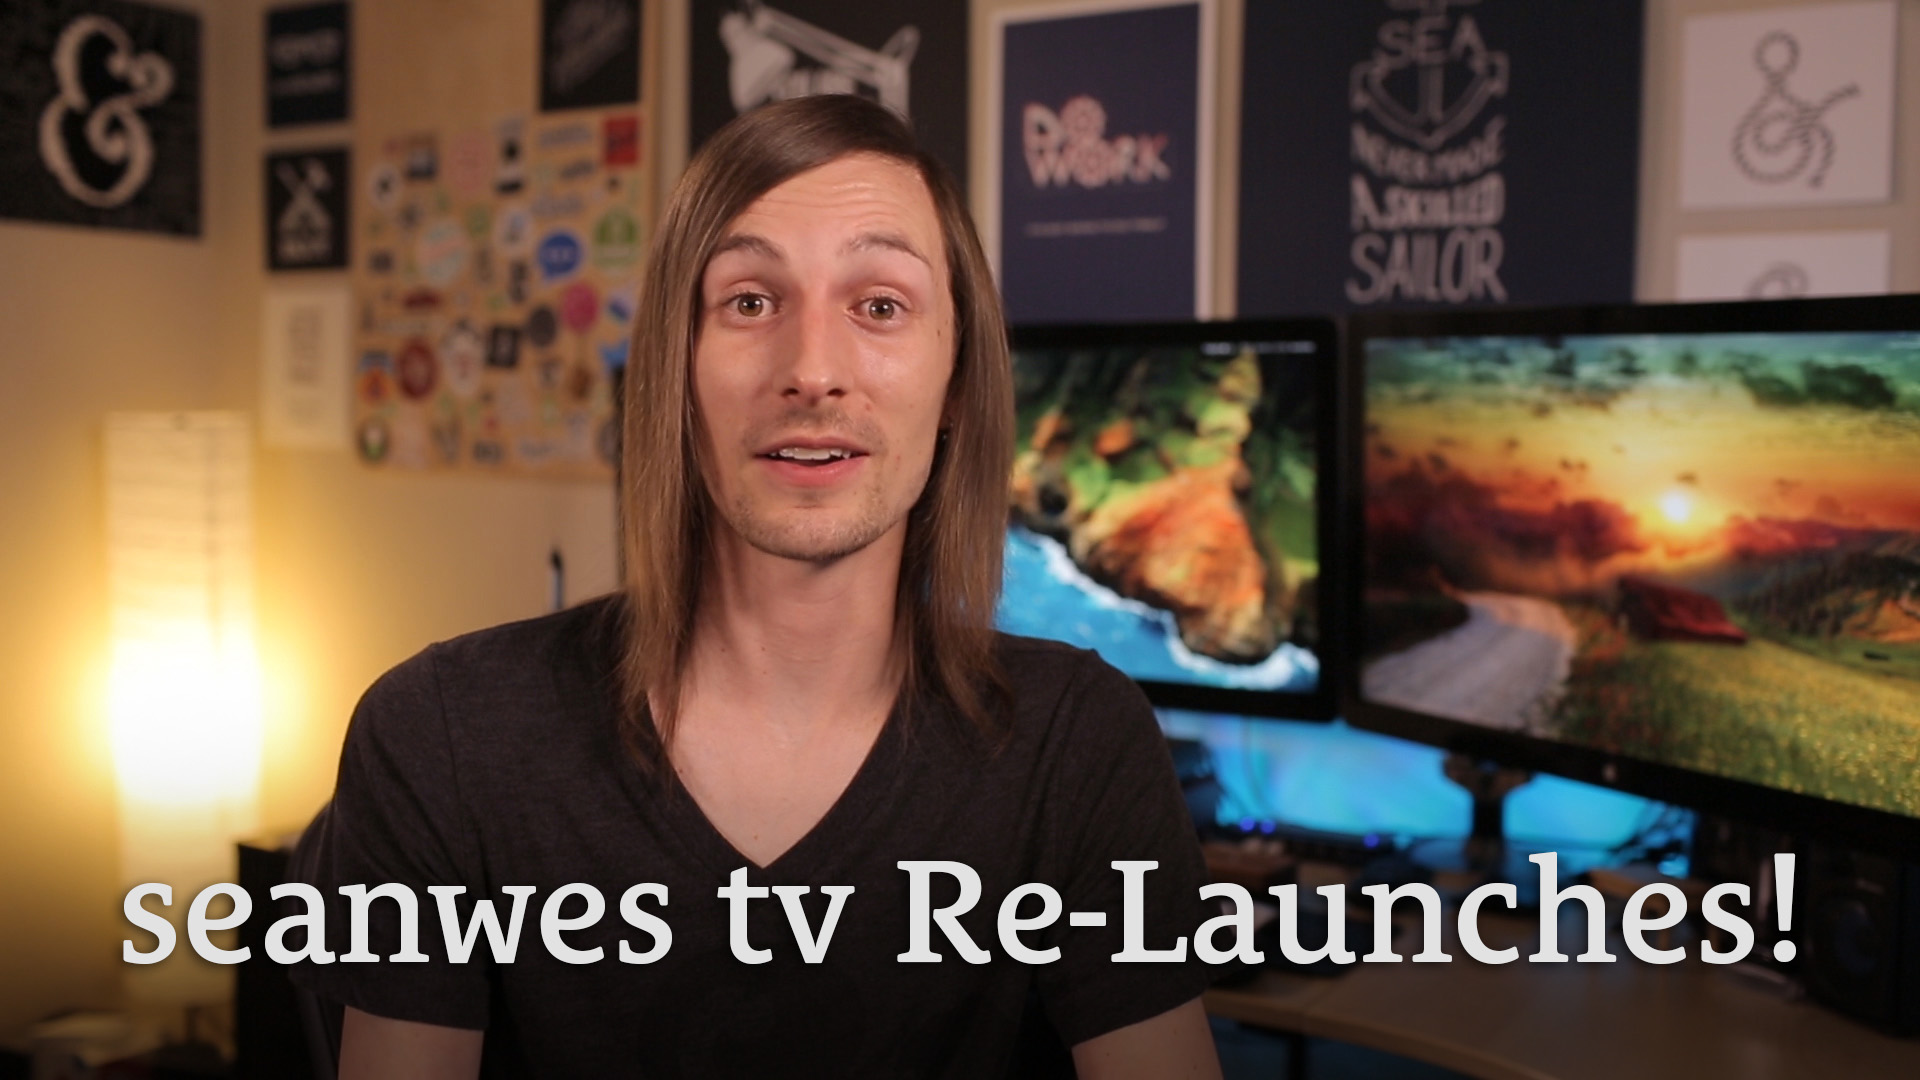 060: seanwes tv Re-Launches - 7 Days a Week!